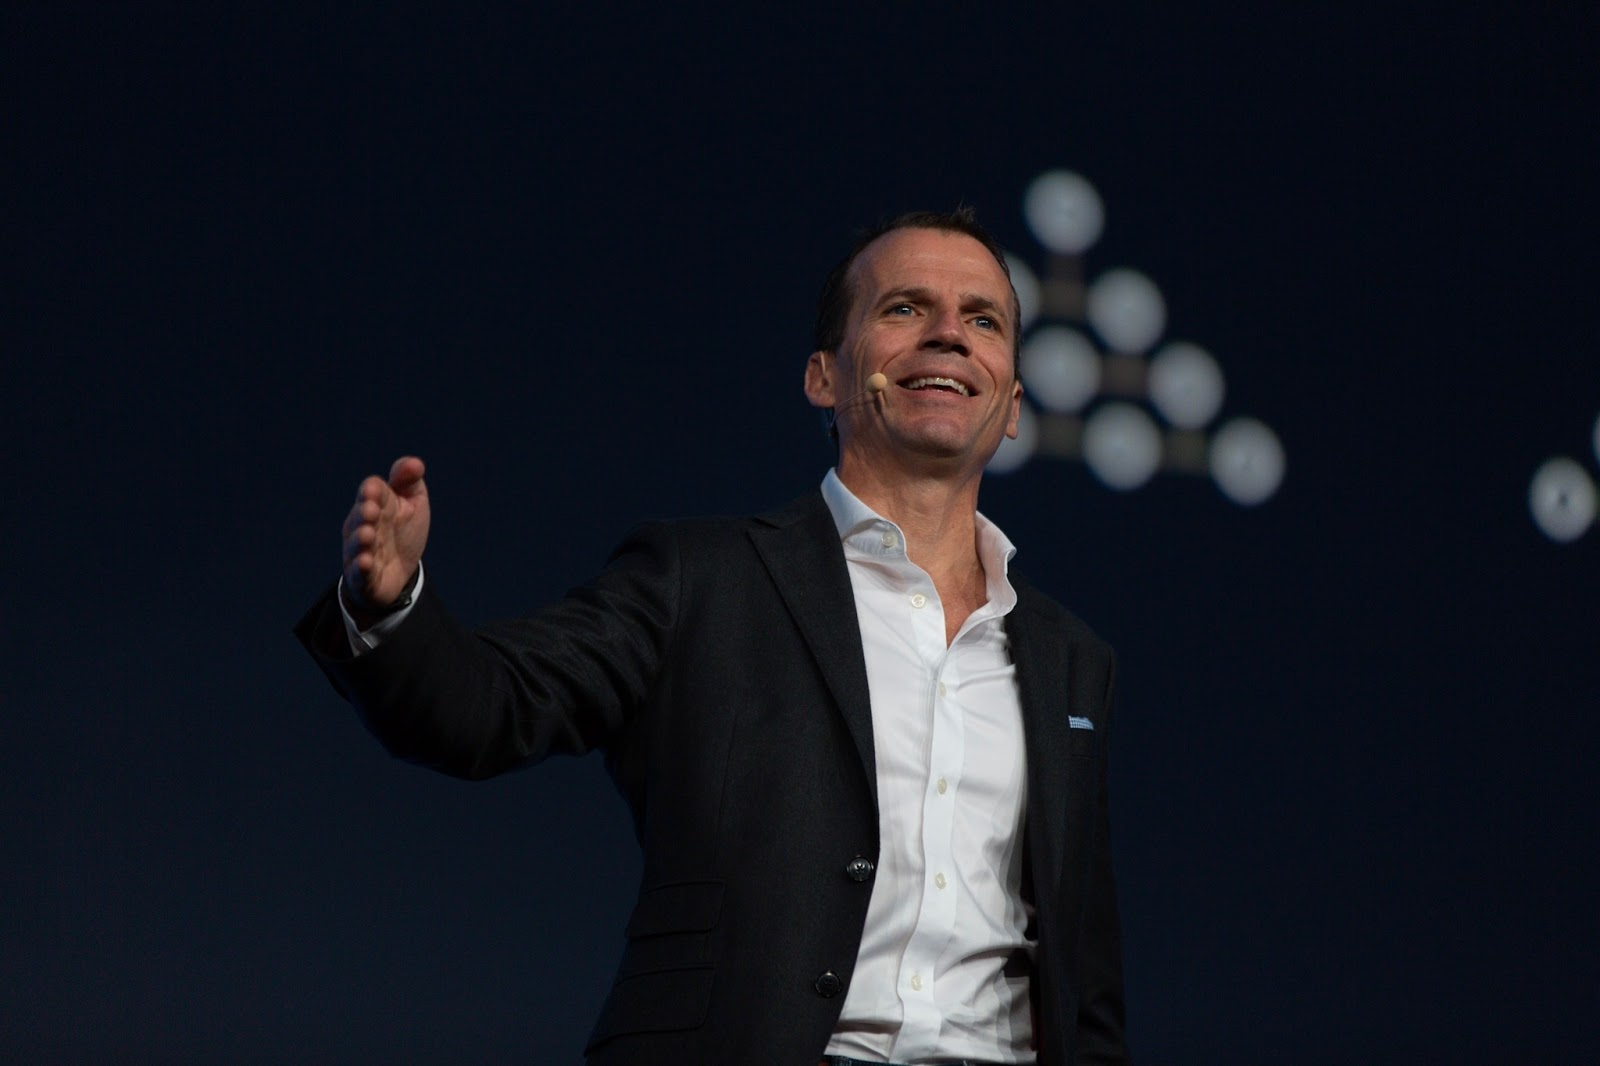 President of the McChrystal Group Chris Fussell